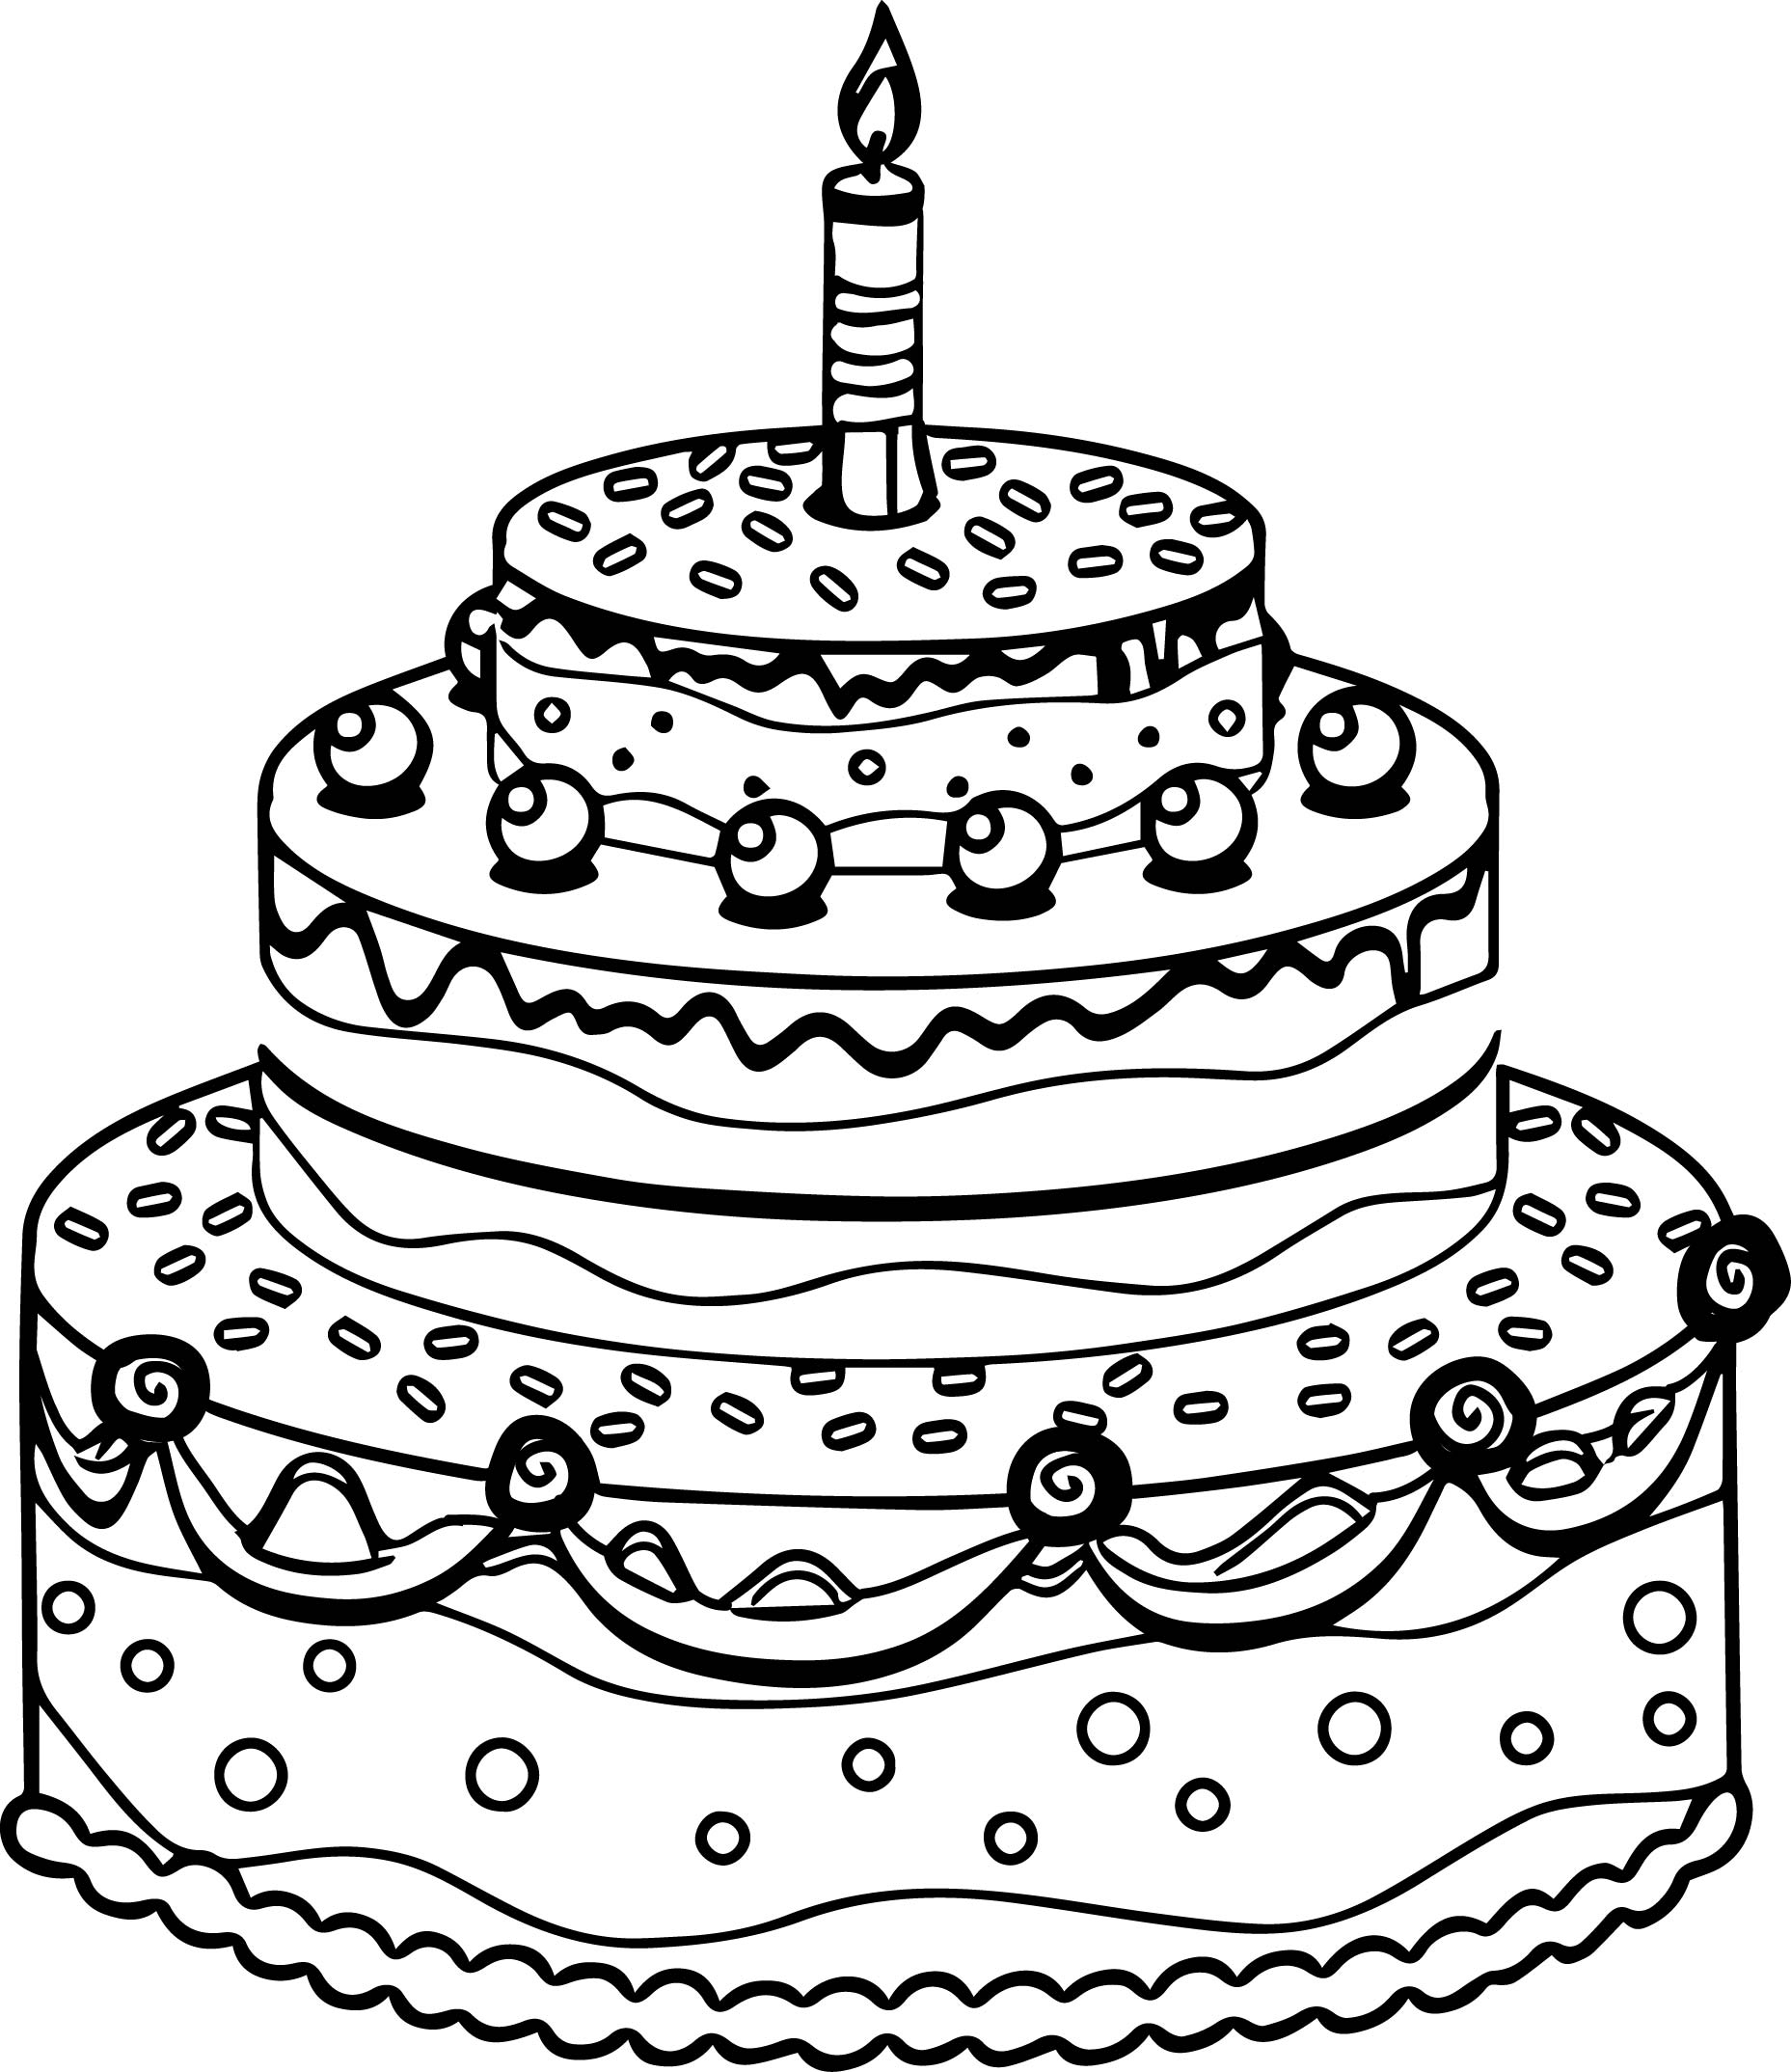 birthday cake drawing template ; birthday-cake-to-color-cute-coloring-page-pages